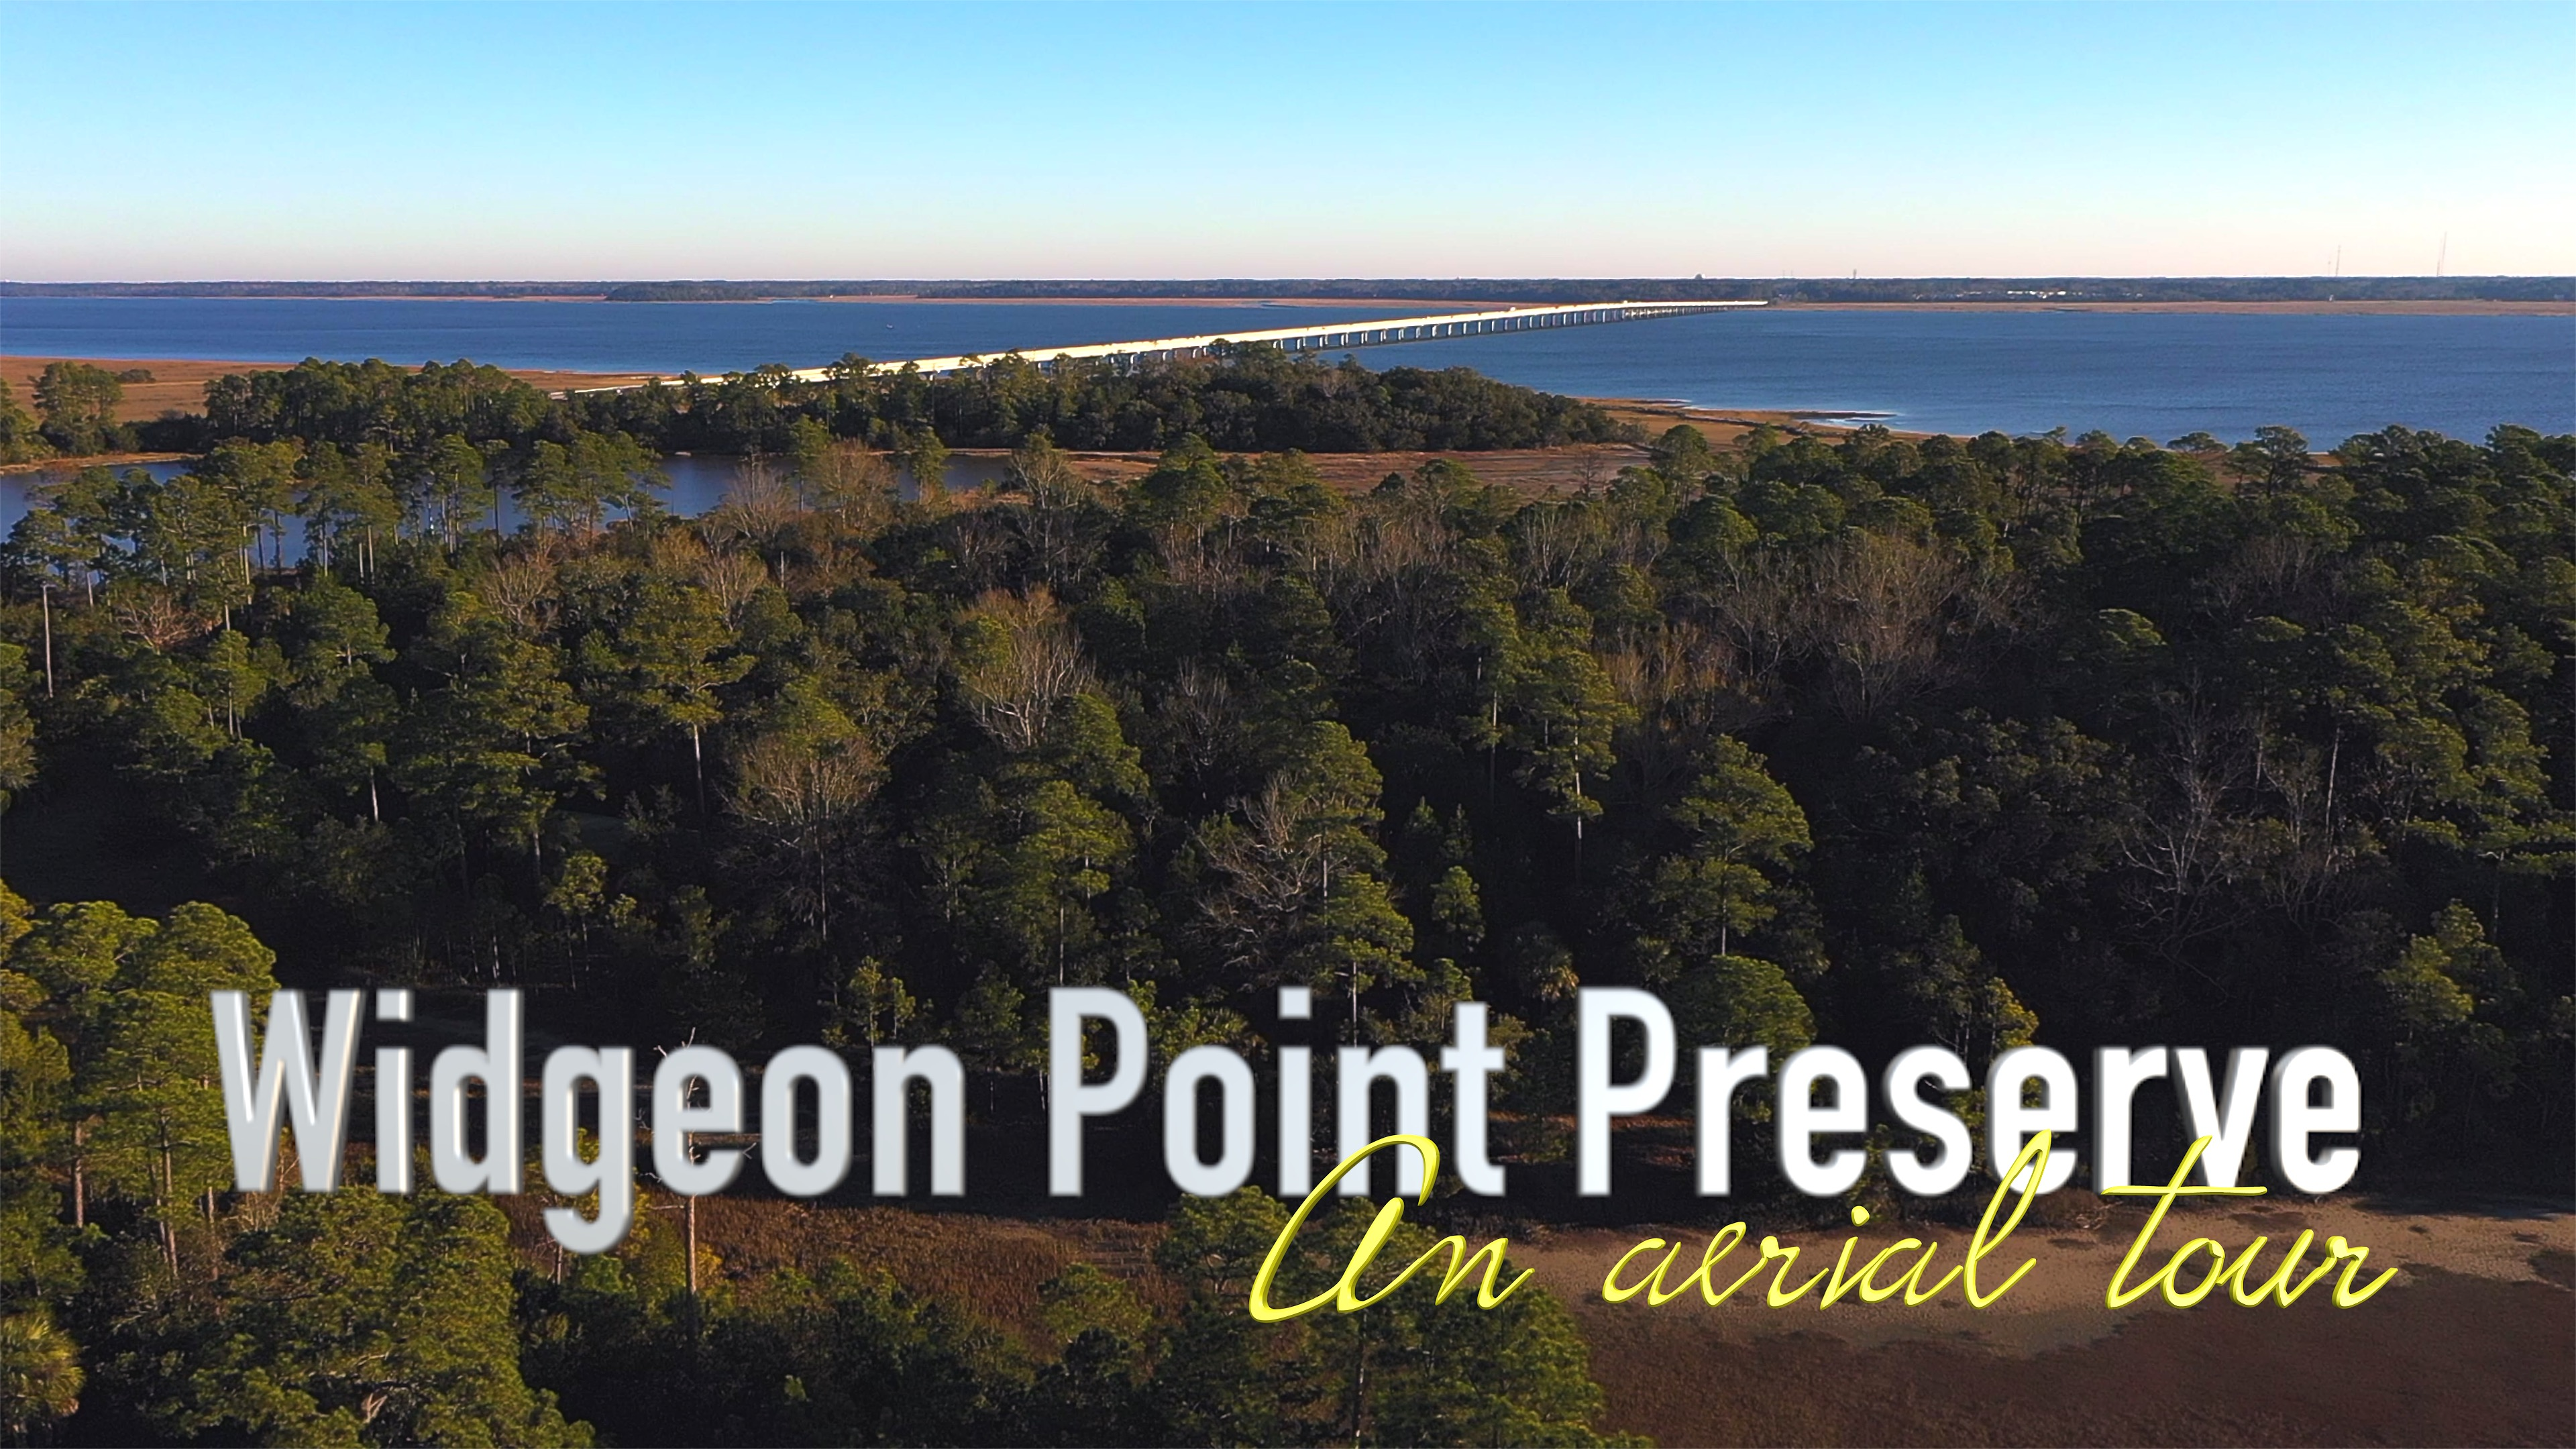 Beaufort's newest preserve